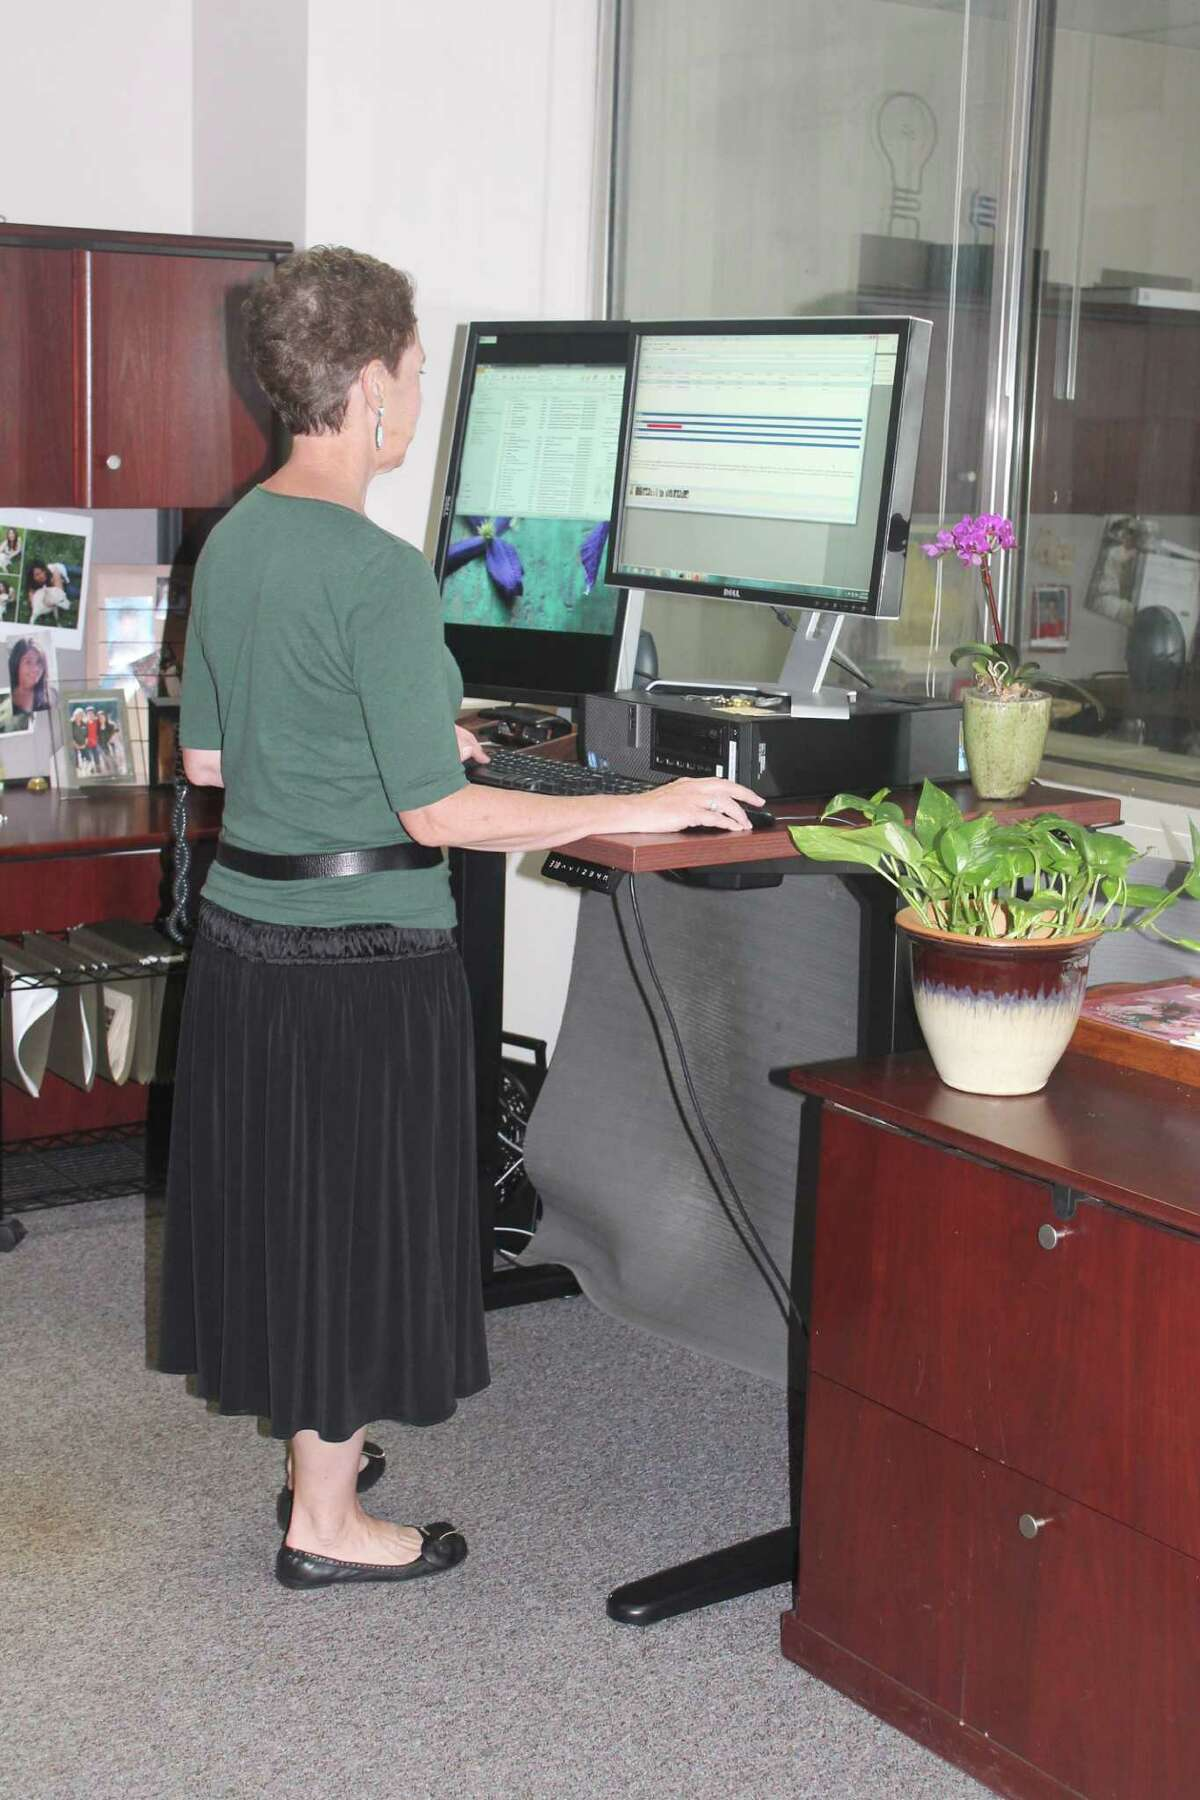 The Jarvis standing desk, available at ergodepot.com, is electronically adjustable and has 26 inches of adjustment, with a maximum height of 51 inches.